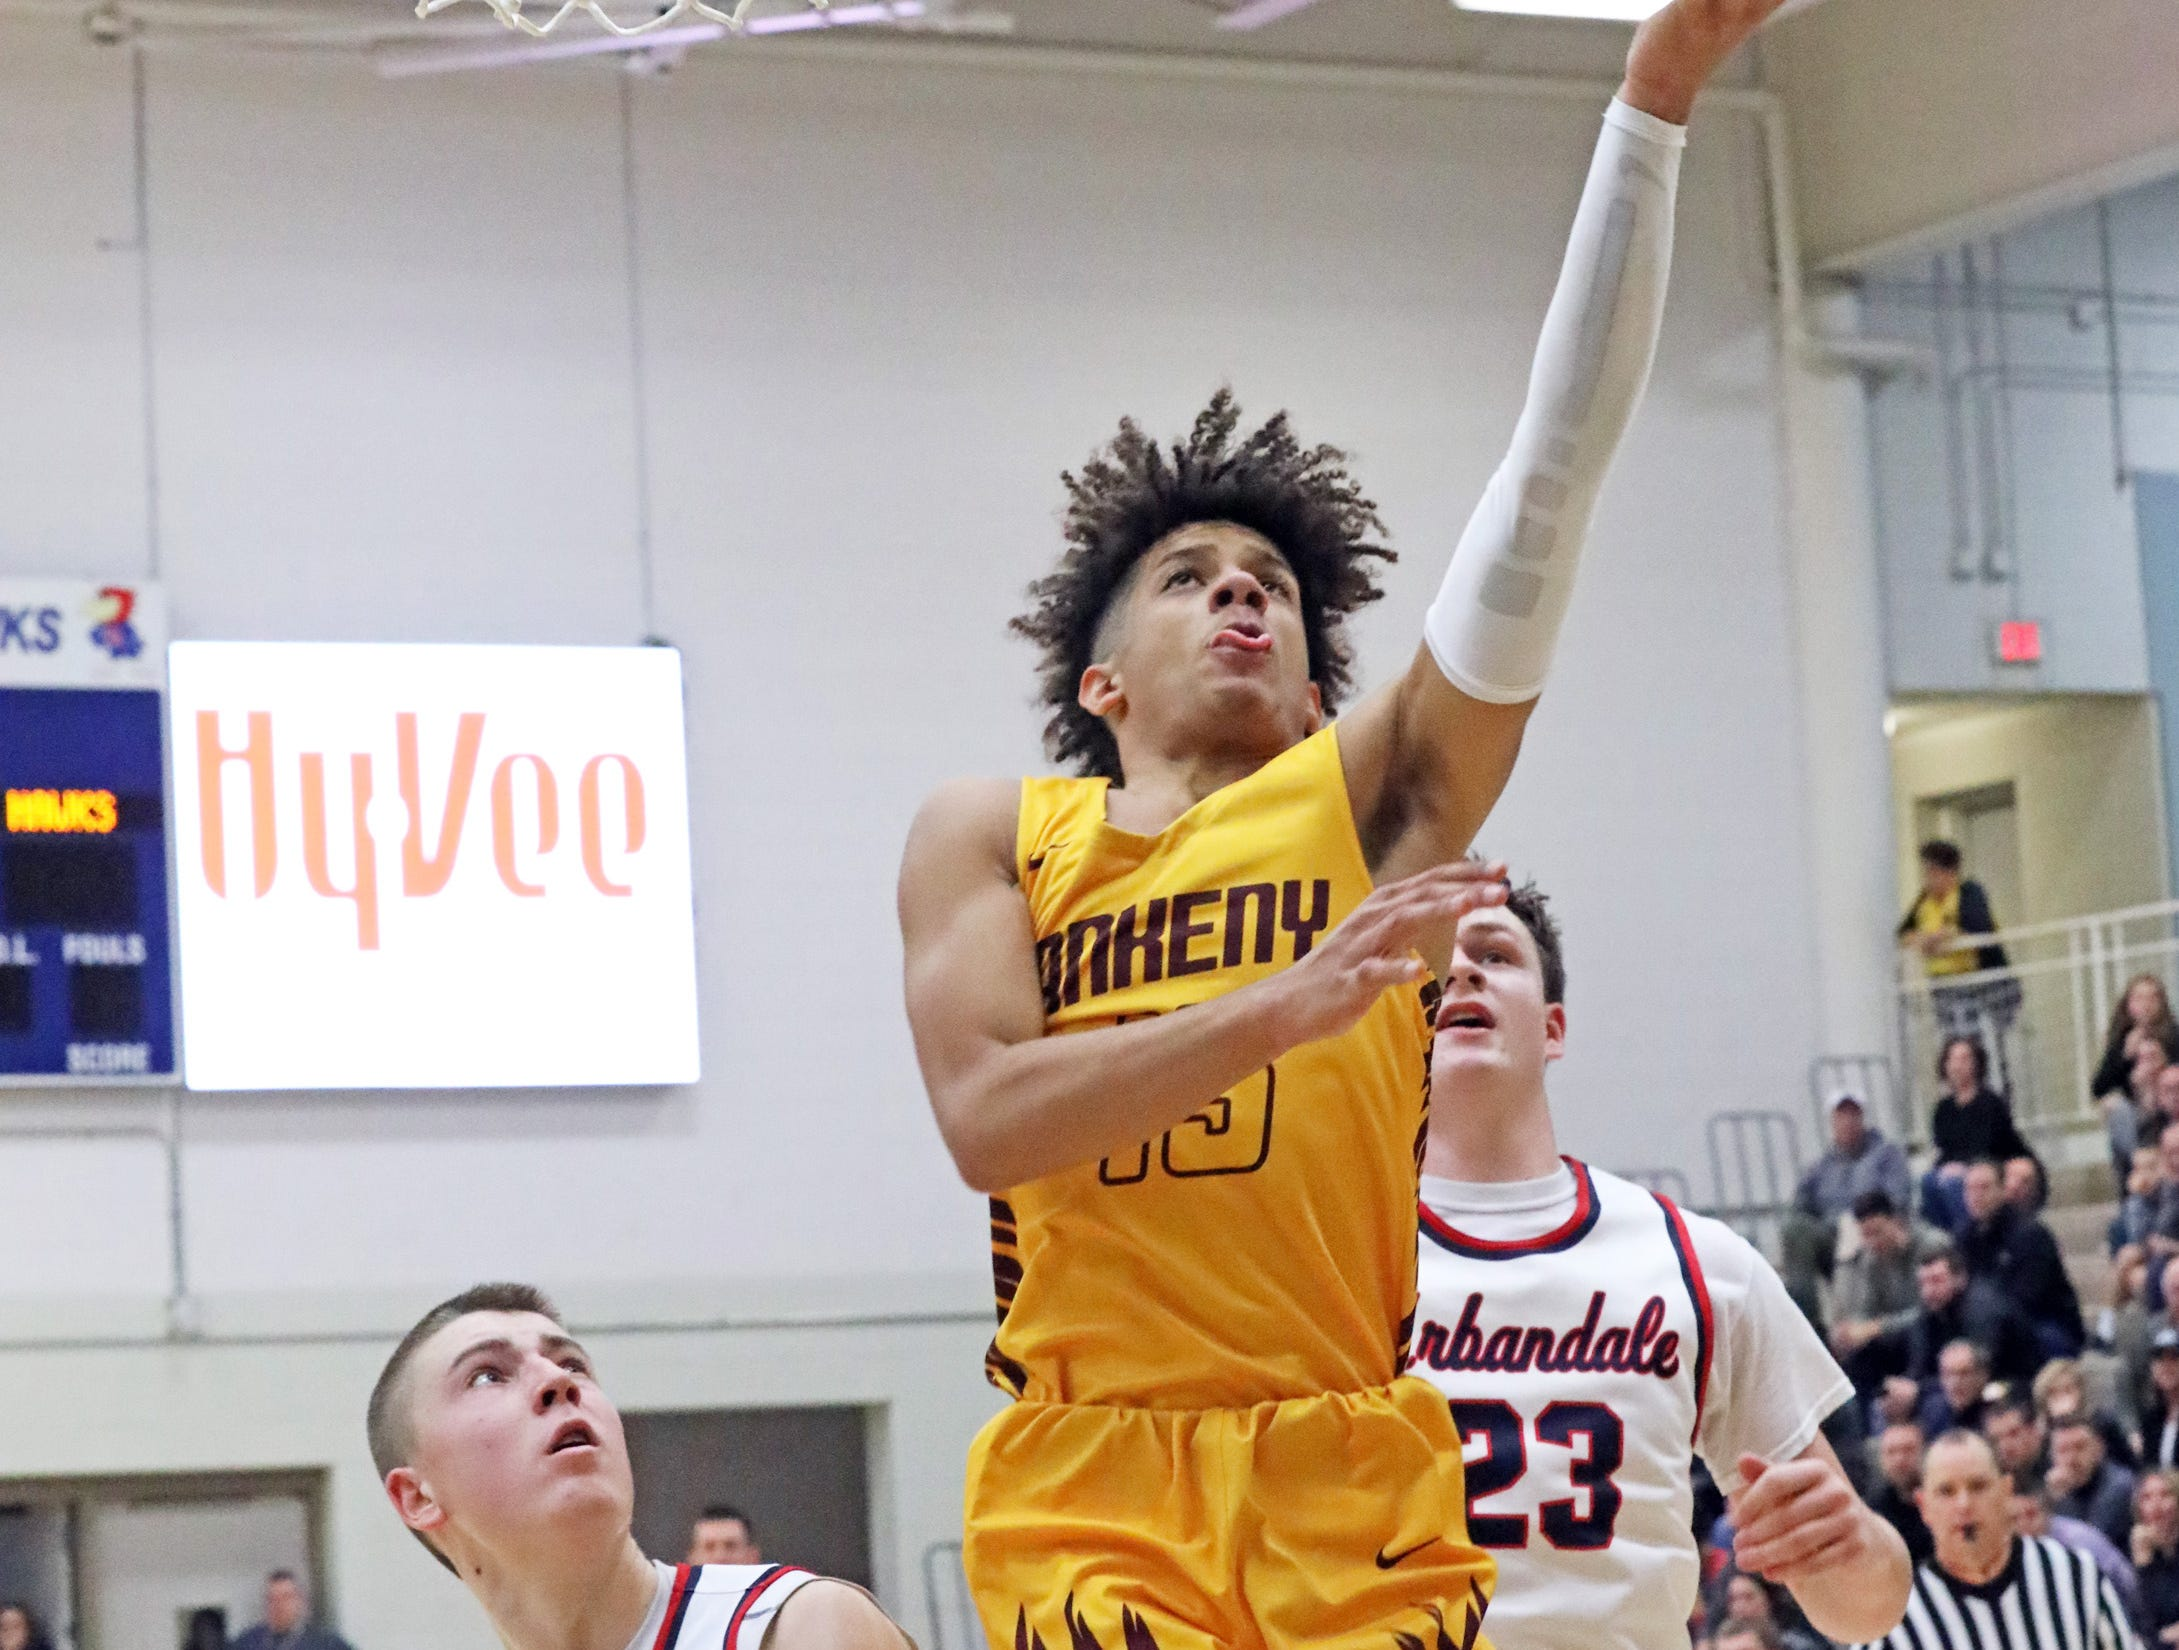 Ankeny junior Braxton Bayless scores two points as the Ankeny Hawks compete against the Urbandale J-Hawks in high school basketball on Friday, Dec. 14, 2018 at Urbandale High School. Ankeny won 62 to 52 to remain undefeated at 6-0.